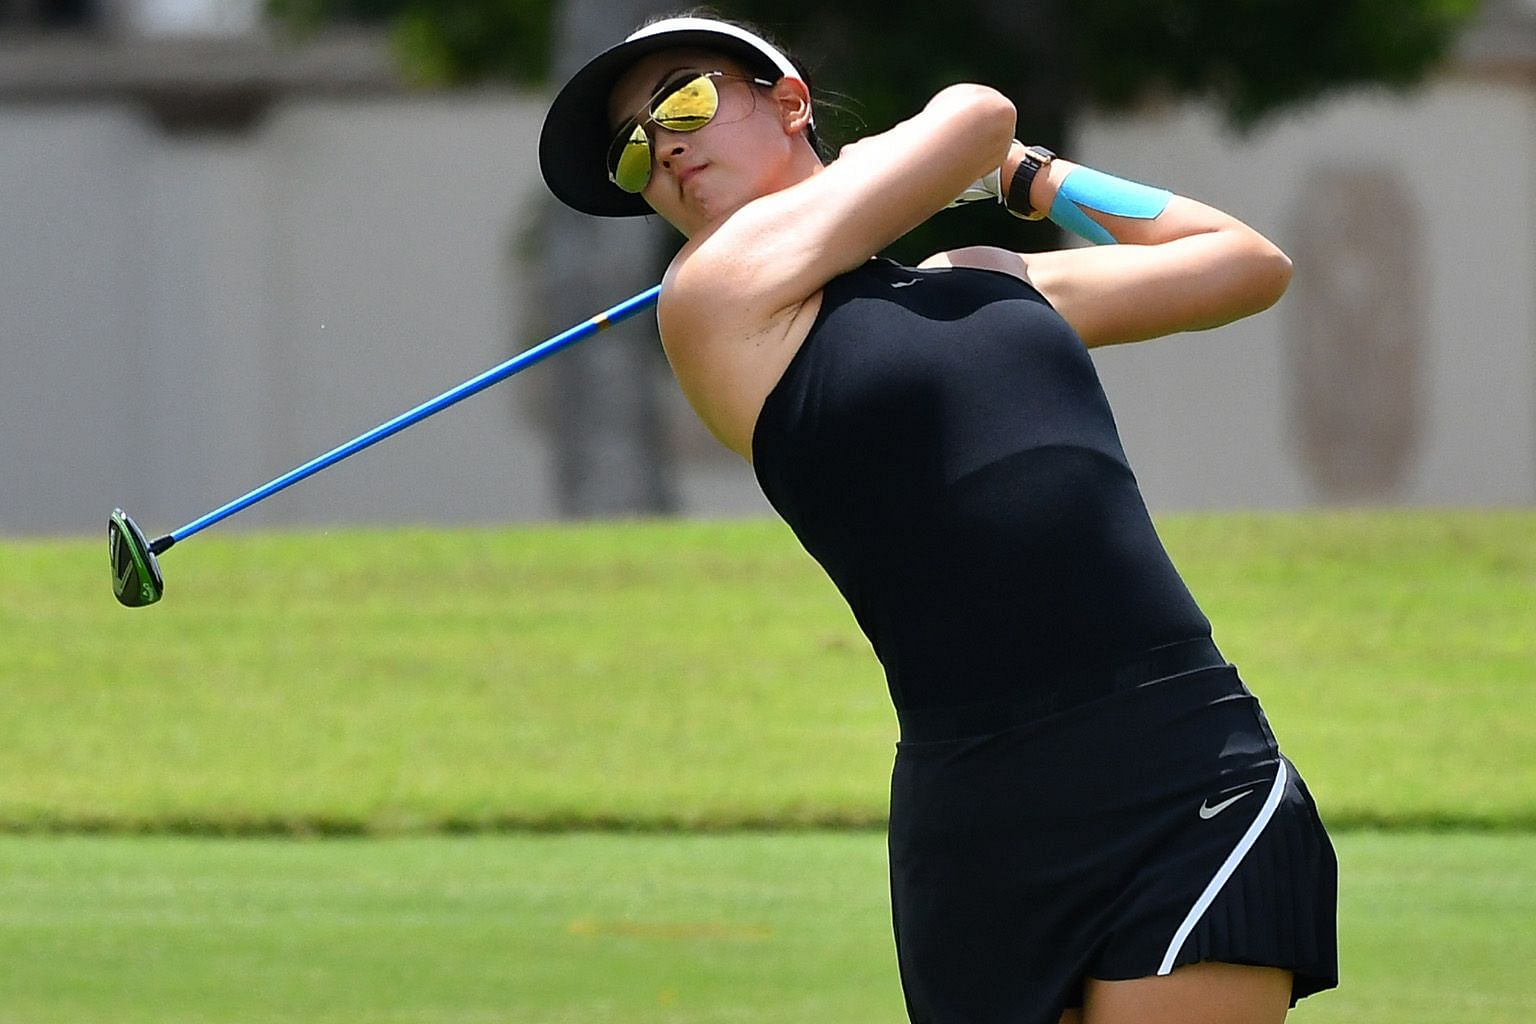 Michelle Wie's eight birdies in her opening round of 66 at the New Tanjong course belie her poor recent form and lowly world ranking of 179. Five golfers, including world No. 2 Ariya Jutanugarn, are right behind her.